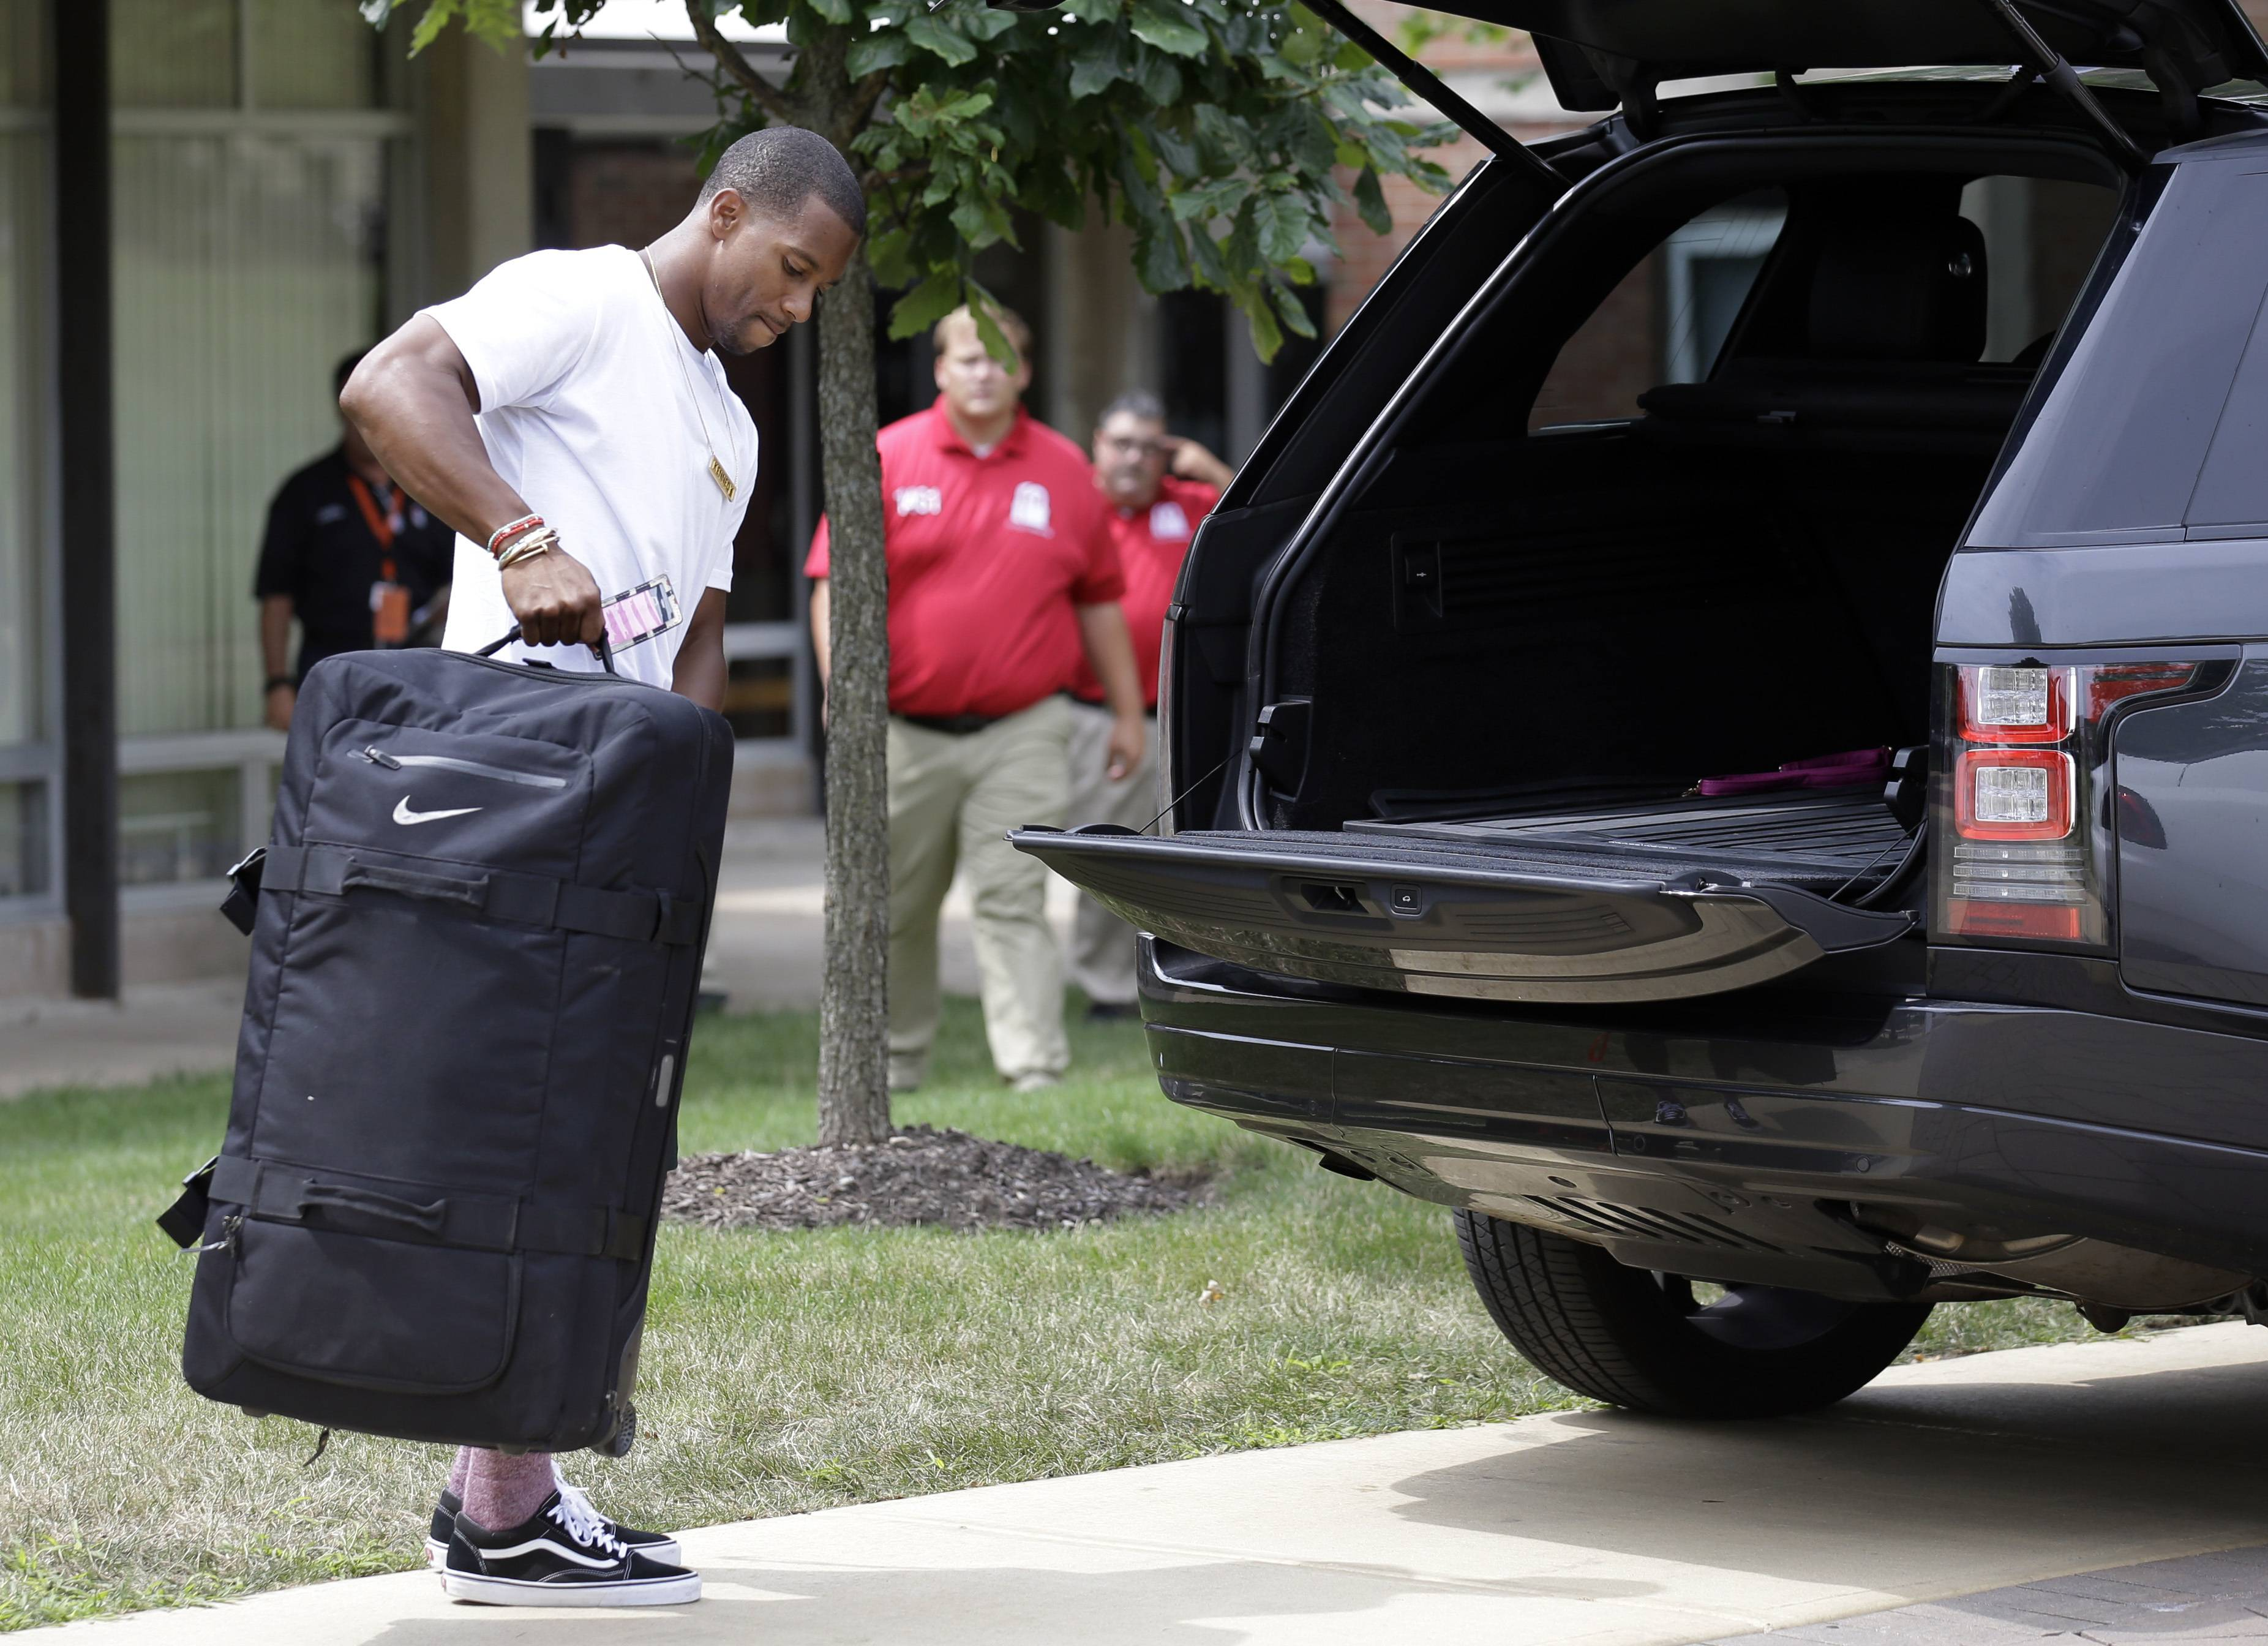 Chicago Bears wide receiver Victor Cruz arrives for an NFL football training camp in Bourbonnais, Ill., Wednesday, July 26, 2017. (AP Photo/Nam Y. Huh)